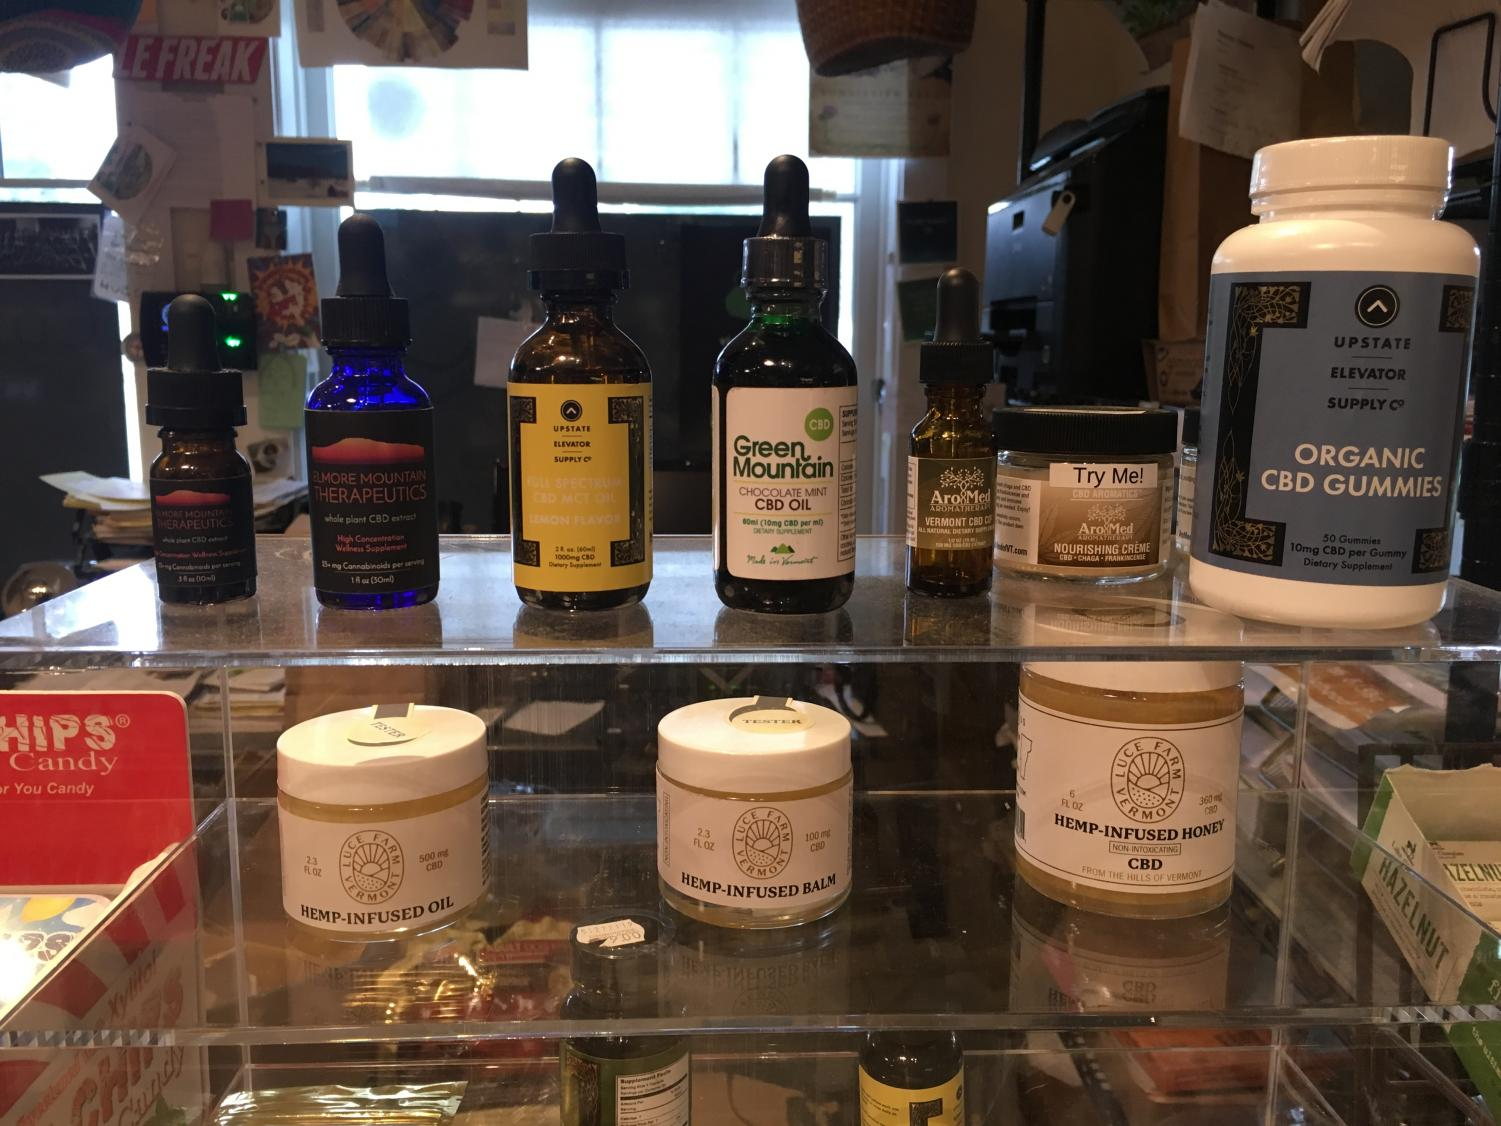 CBD display at Commodities Natural Market, Stowe, Vermont